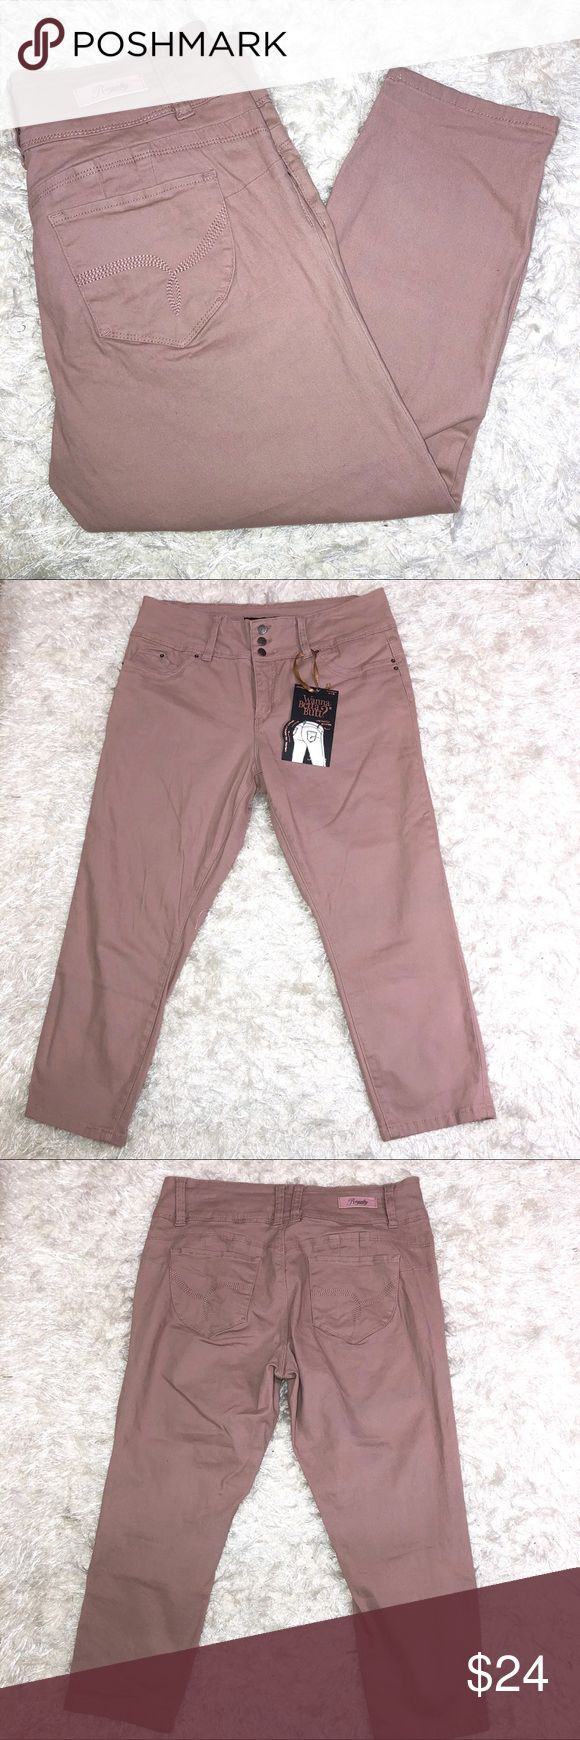 """Dusty Rose Pink Capris Size 14 Wanna Betta Butt? Pink Capri cropped pants.  98% cotton, 2% spandex  Size 14  Waist 34"""" Rise 10.5"""" Inseam 23"""" New  Soft and comfy with stretch Pants Capris"""